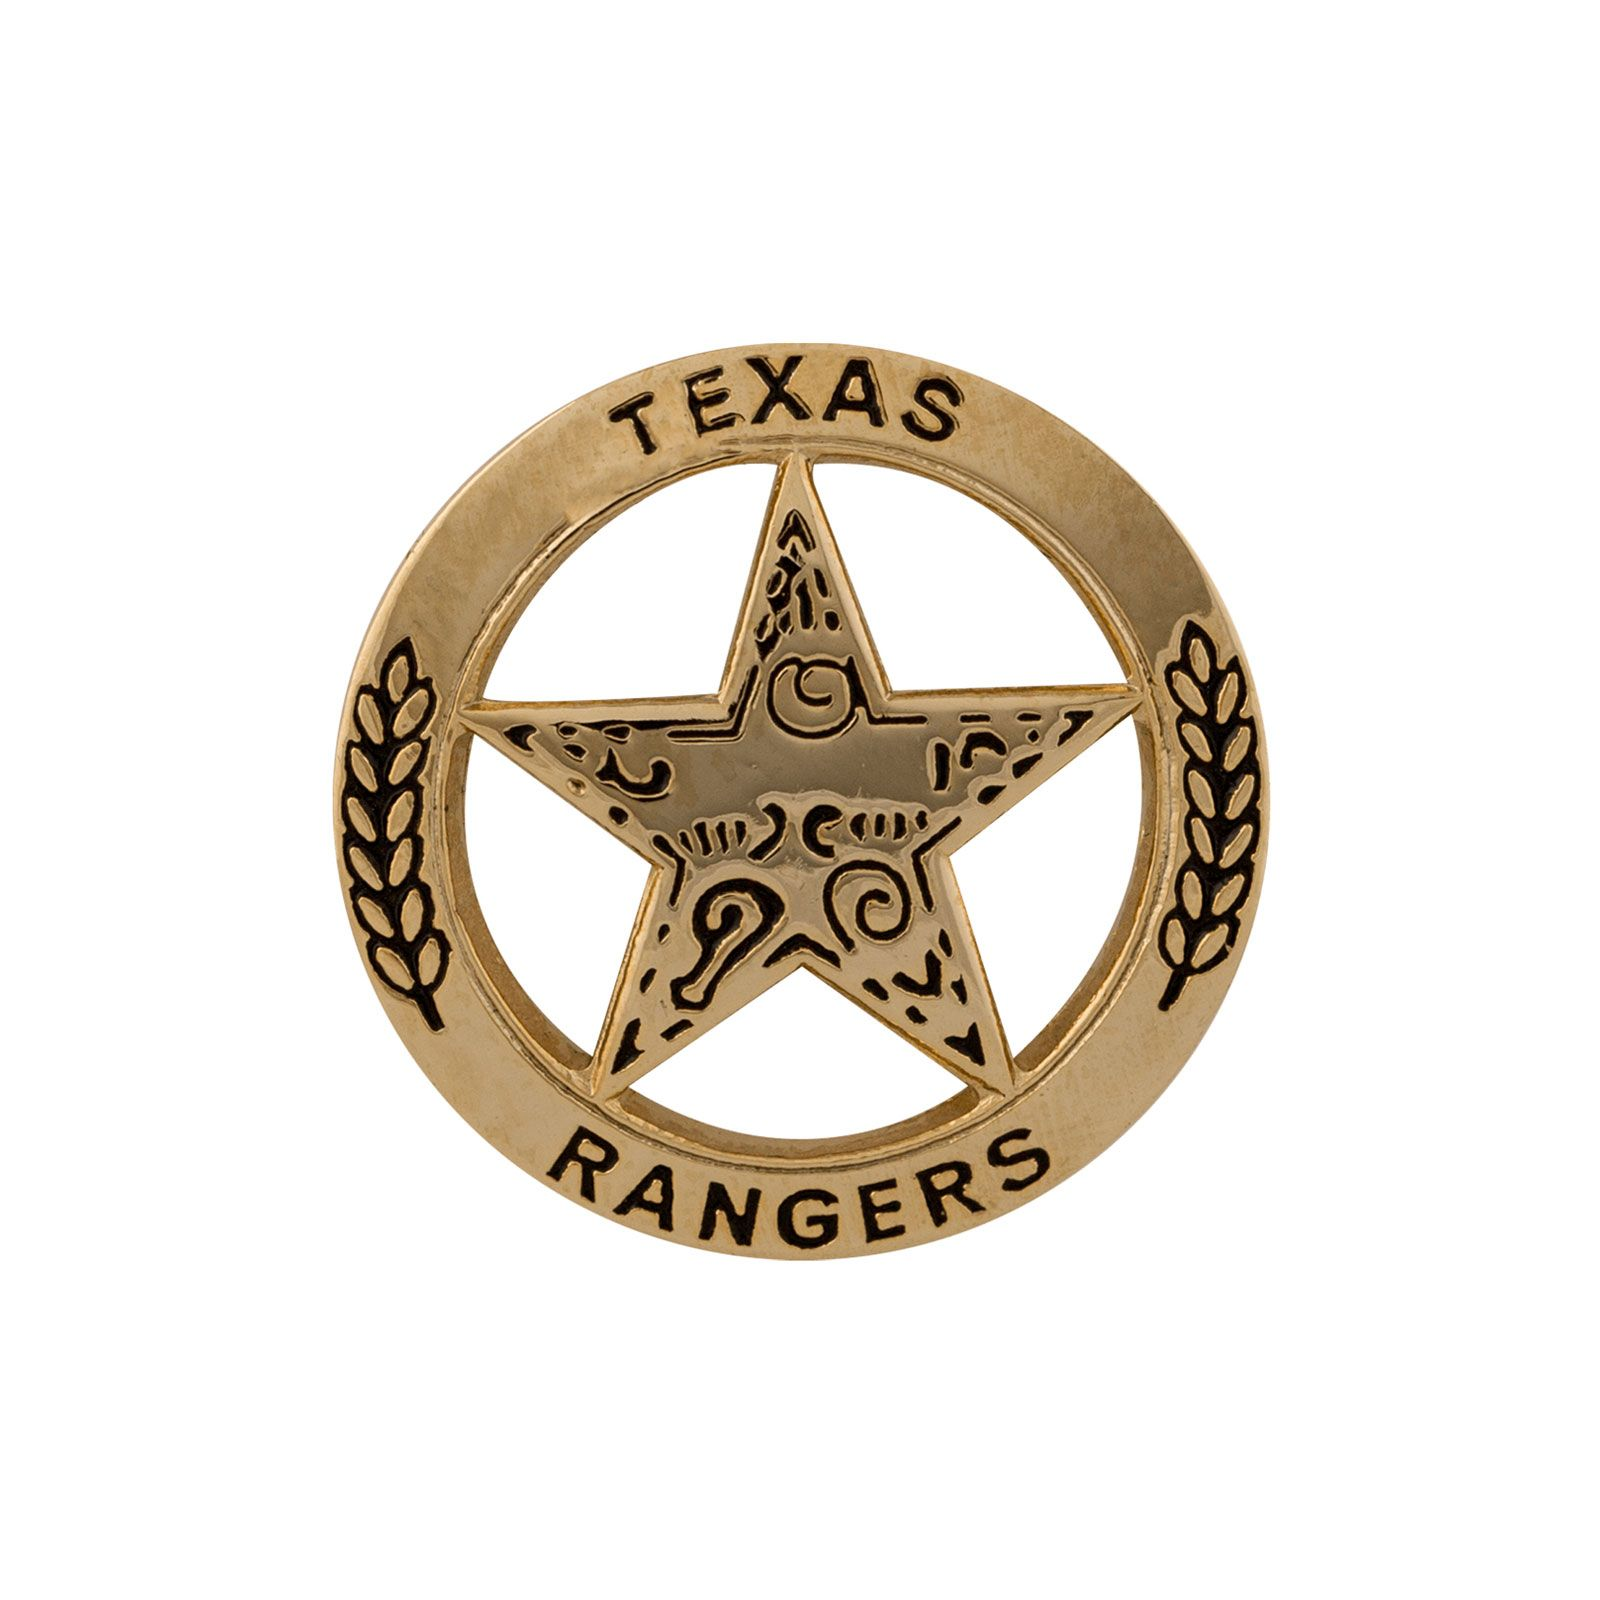 Texas Ranger Lapel Pin - Gold